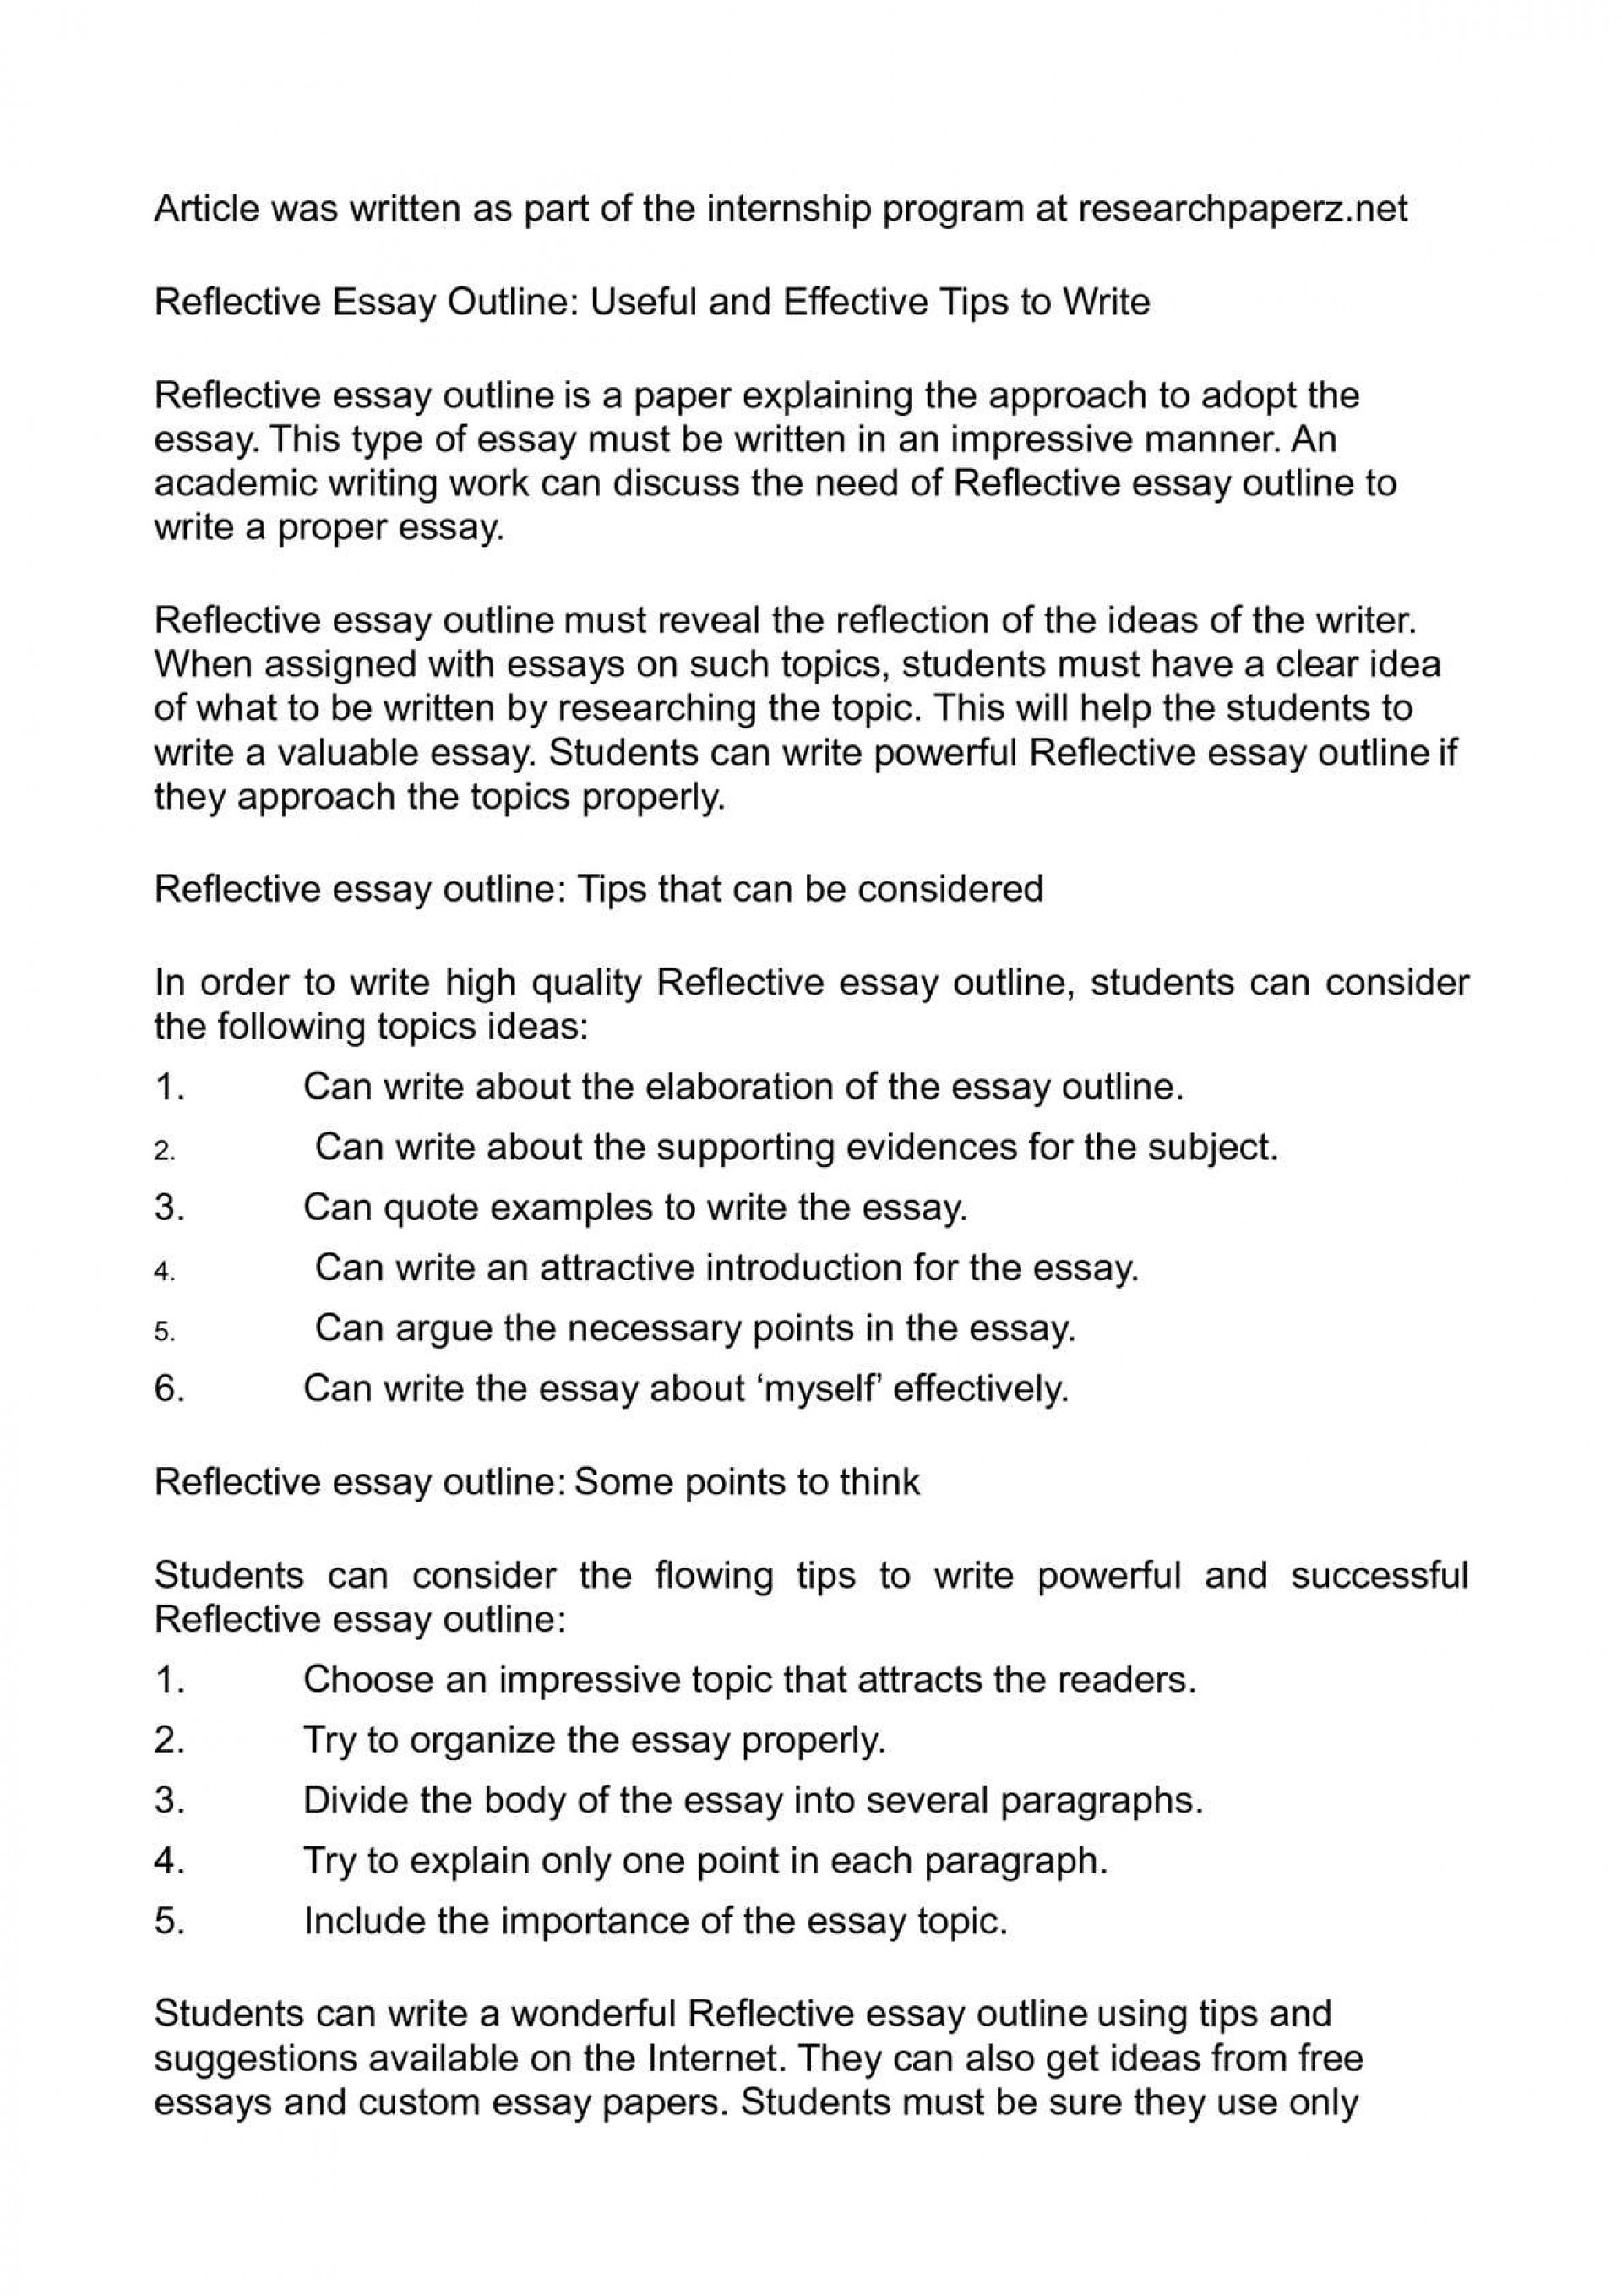 001 Reflective Essay Outline Useful And Effective Tips To Wri On Critical Reading Writing Magnificent Course Reflection Paper Pdf 1920